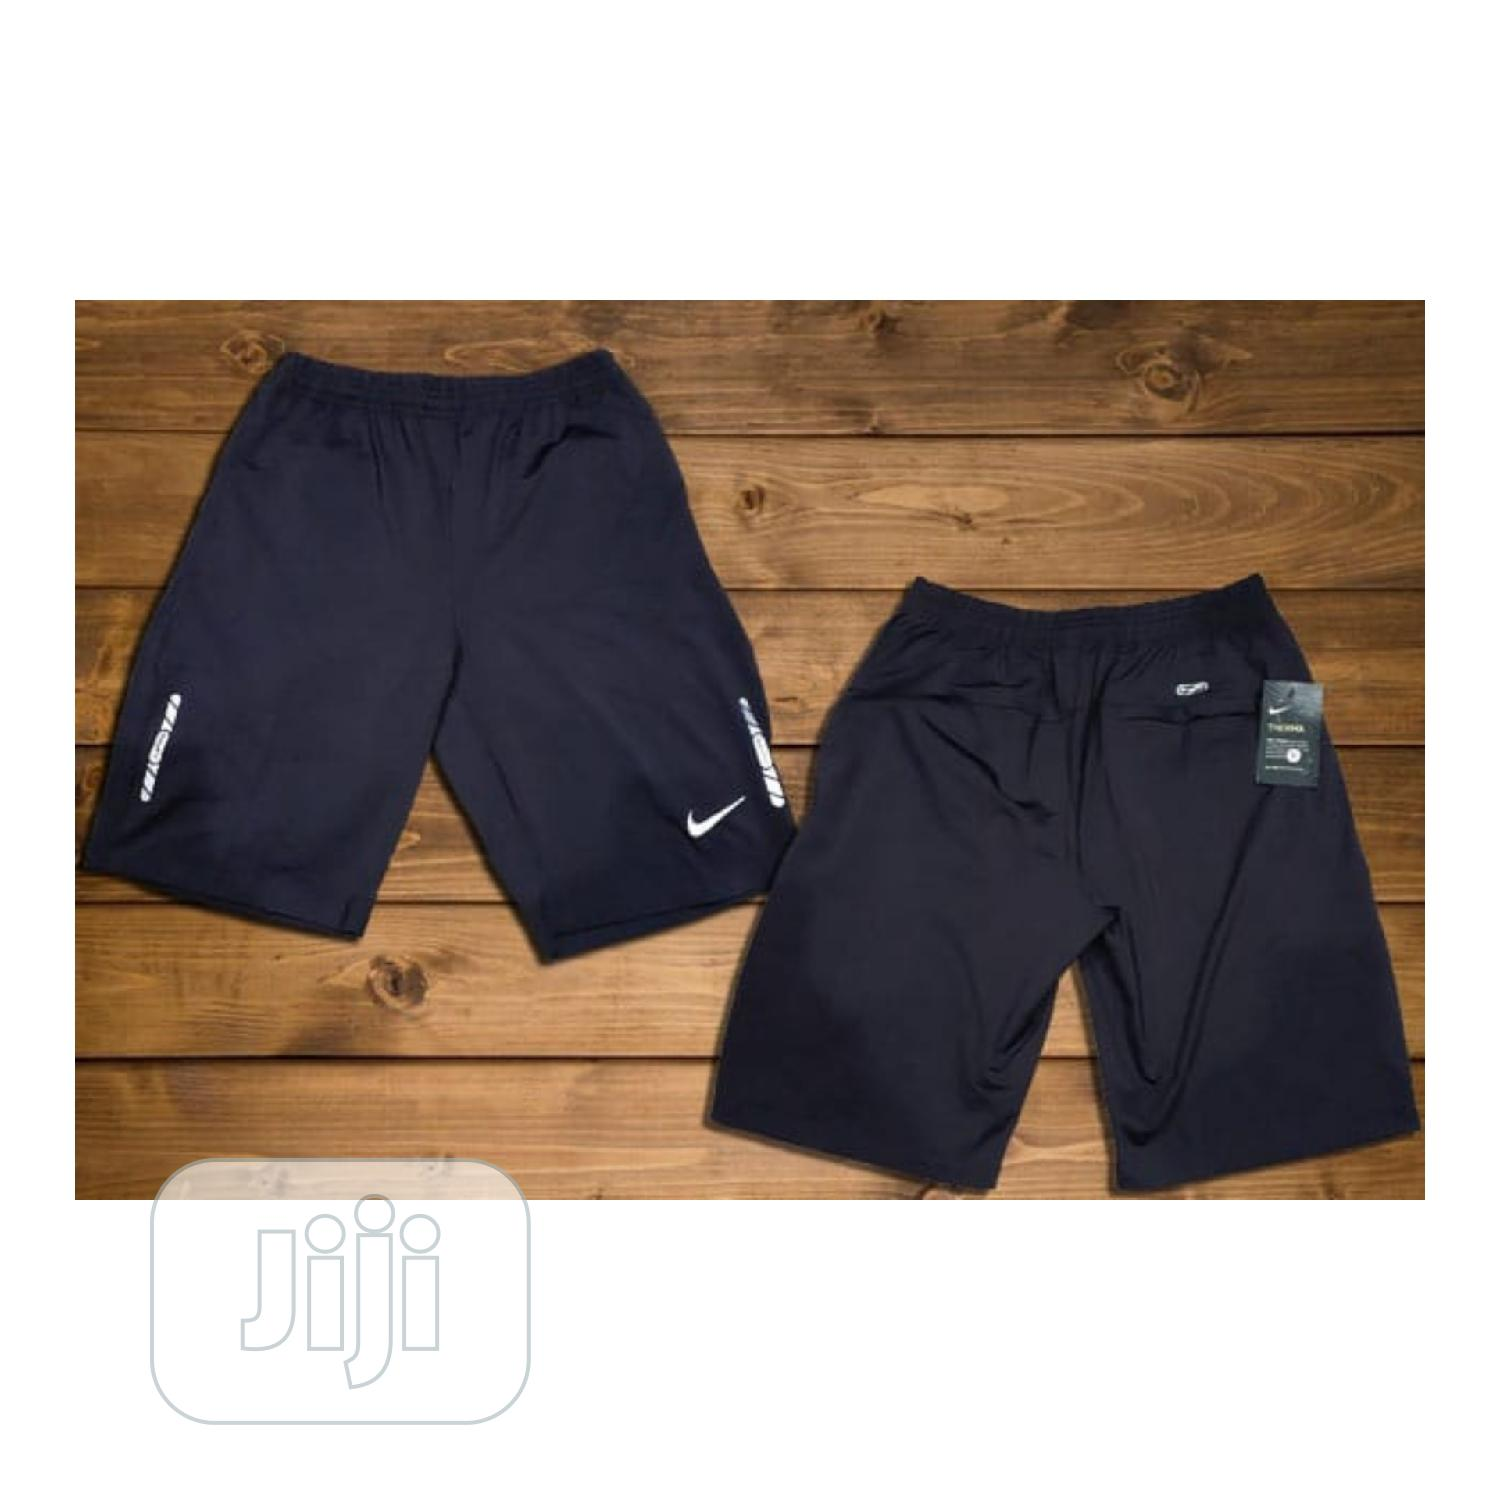 Authentic Shorts | Clothing for sale in Lekki Phase 1, Lagos State, Nigeria